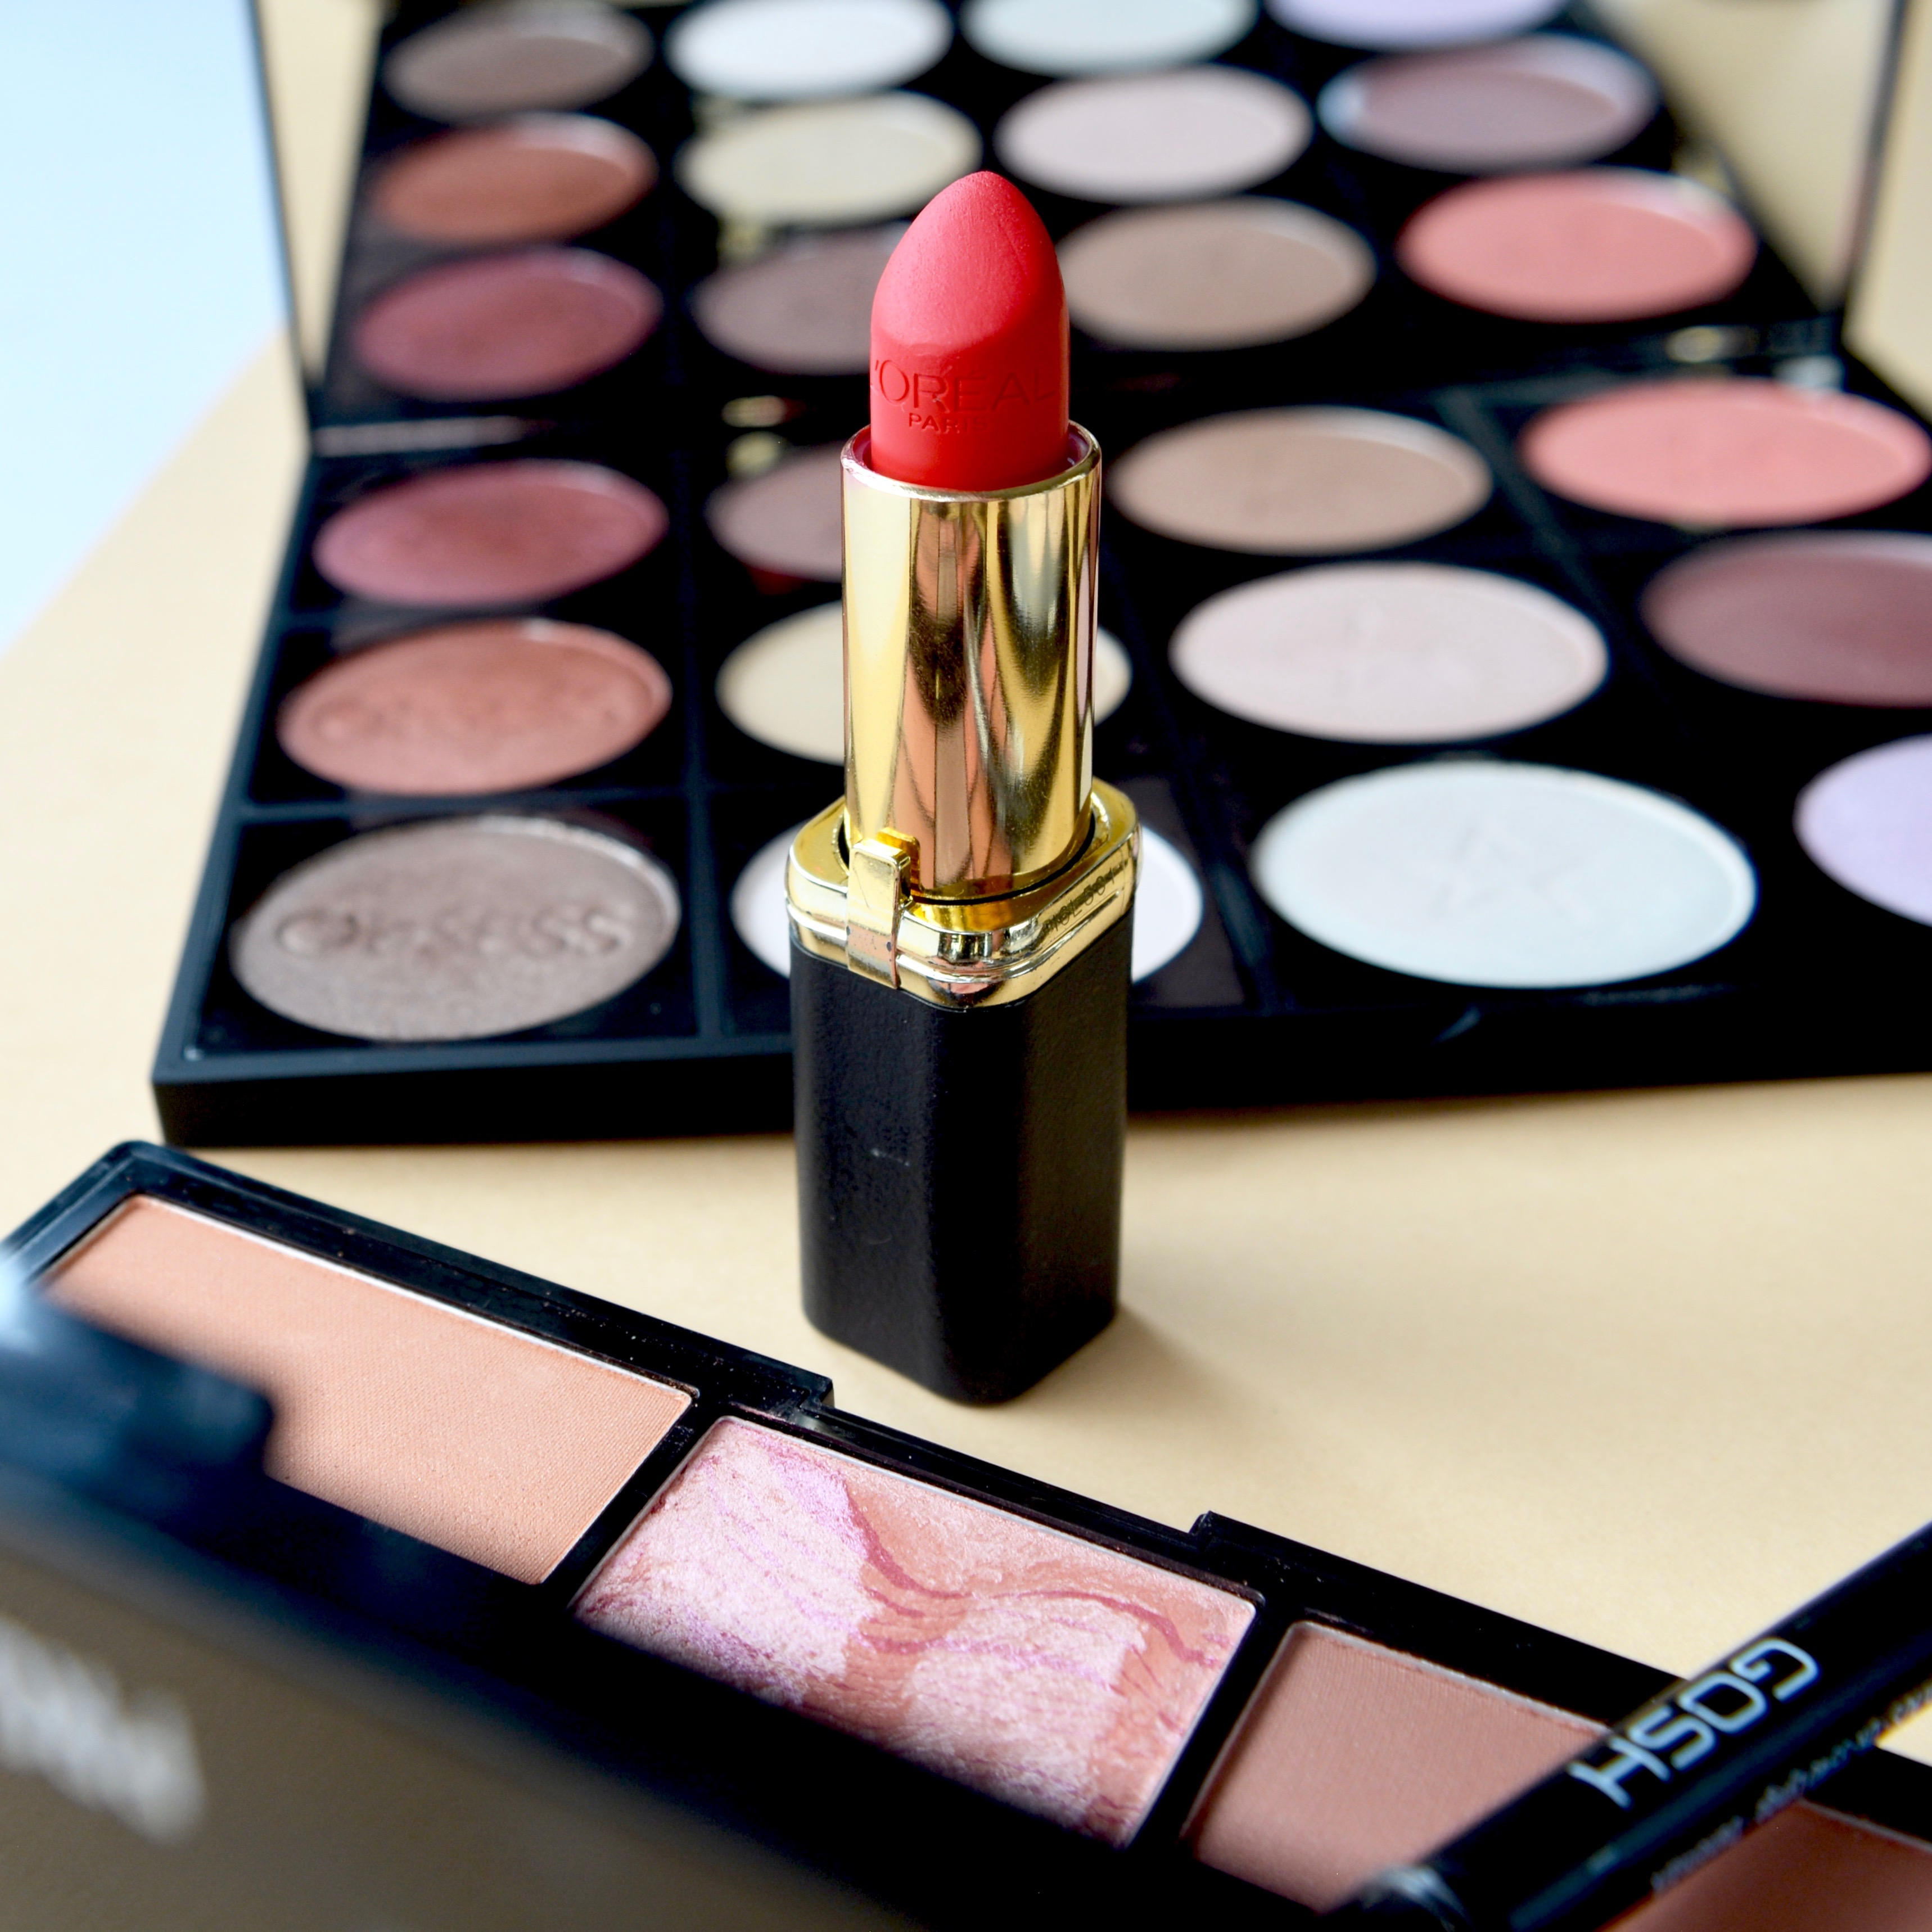 Highstreet Gems: L'Oréal Paris Collection Exclusive lipstick in 'Julianne's Red'